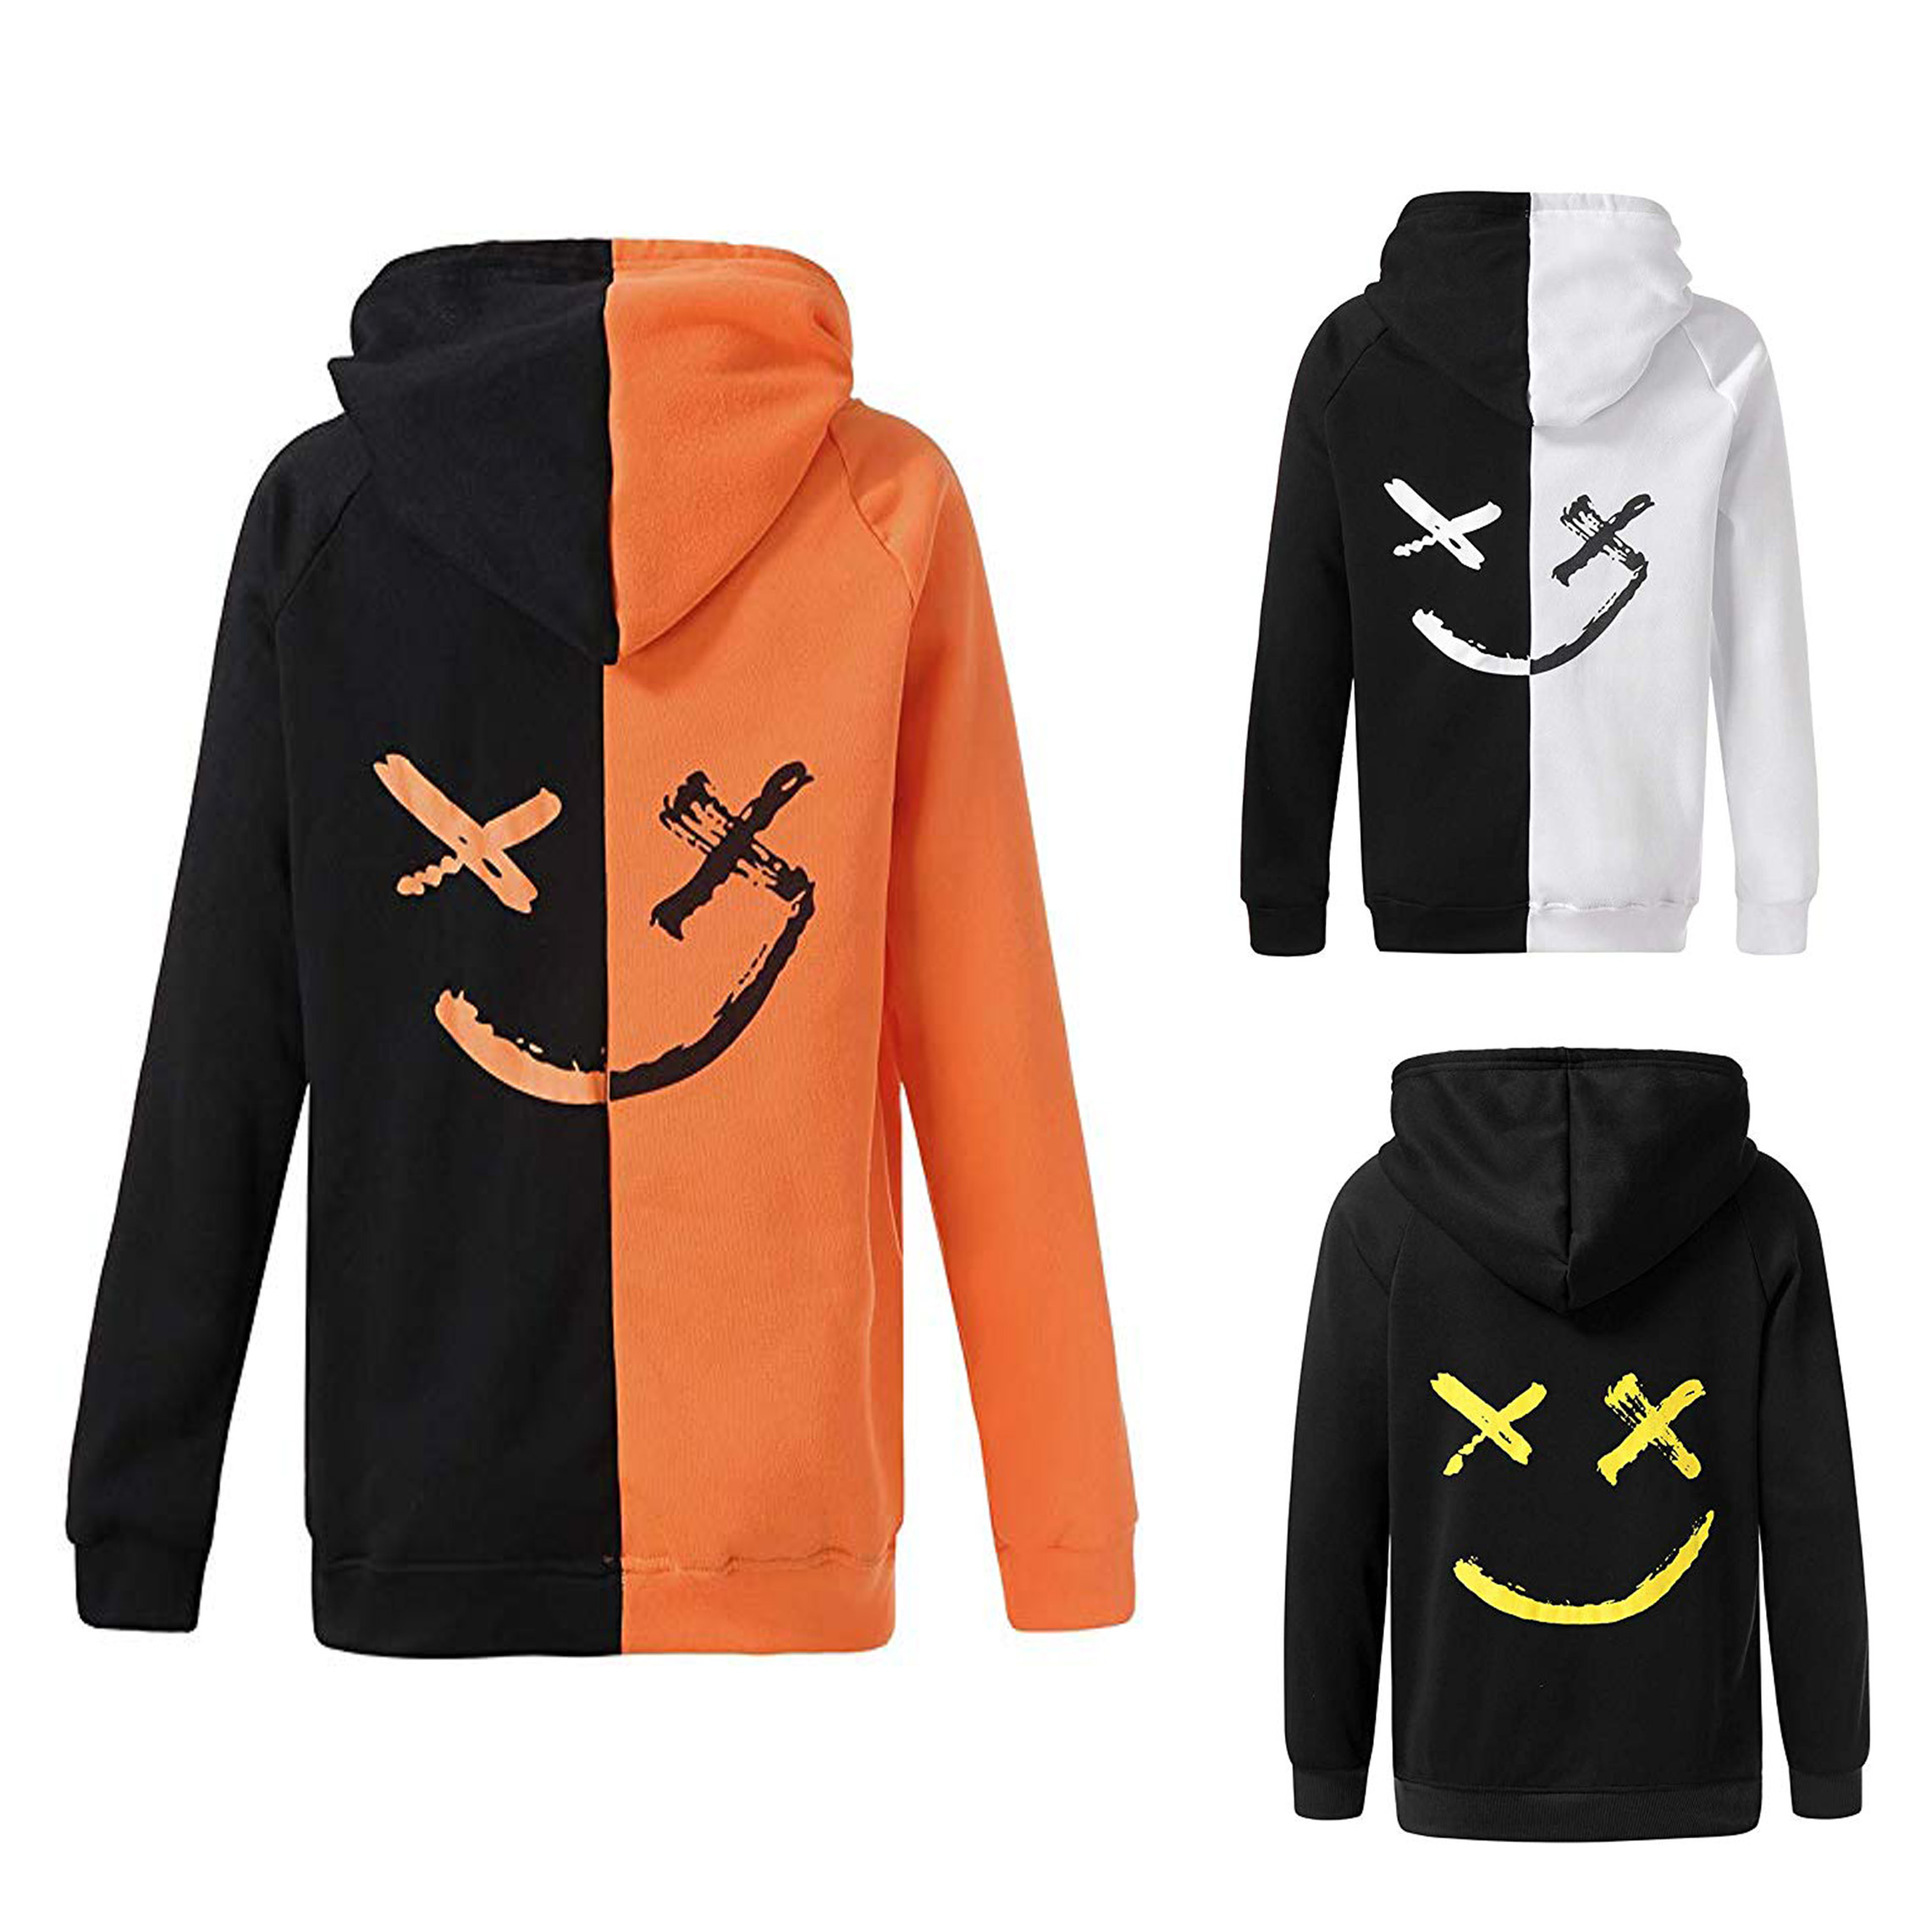 2018 EBay New Style Autumn Christmas Men'S Wear Smiley Printed Pullover Hoodie Coat